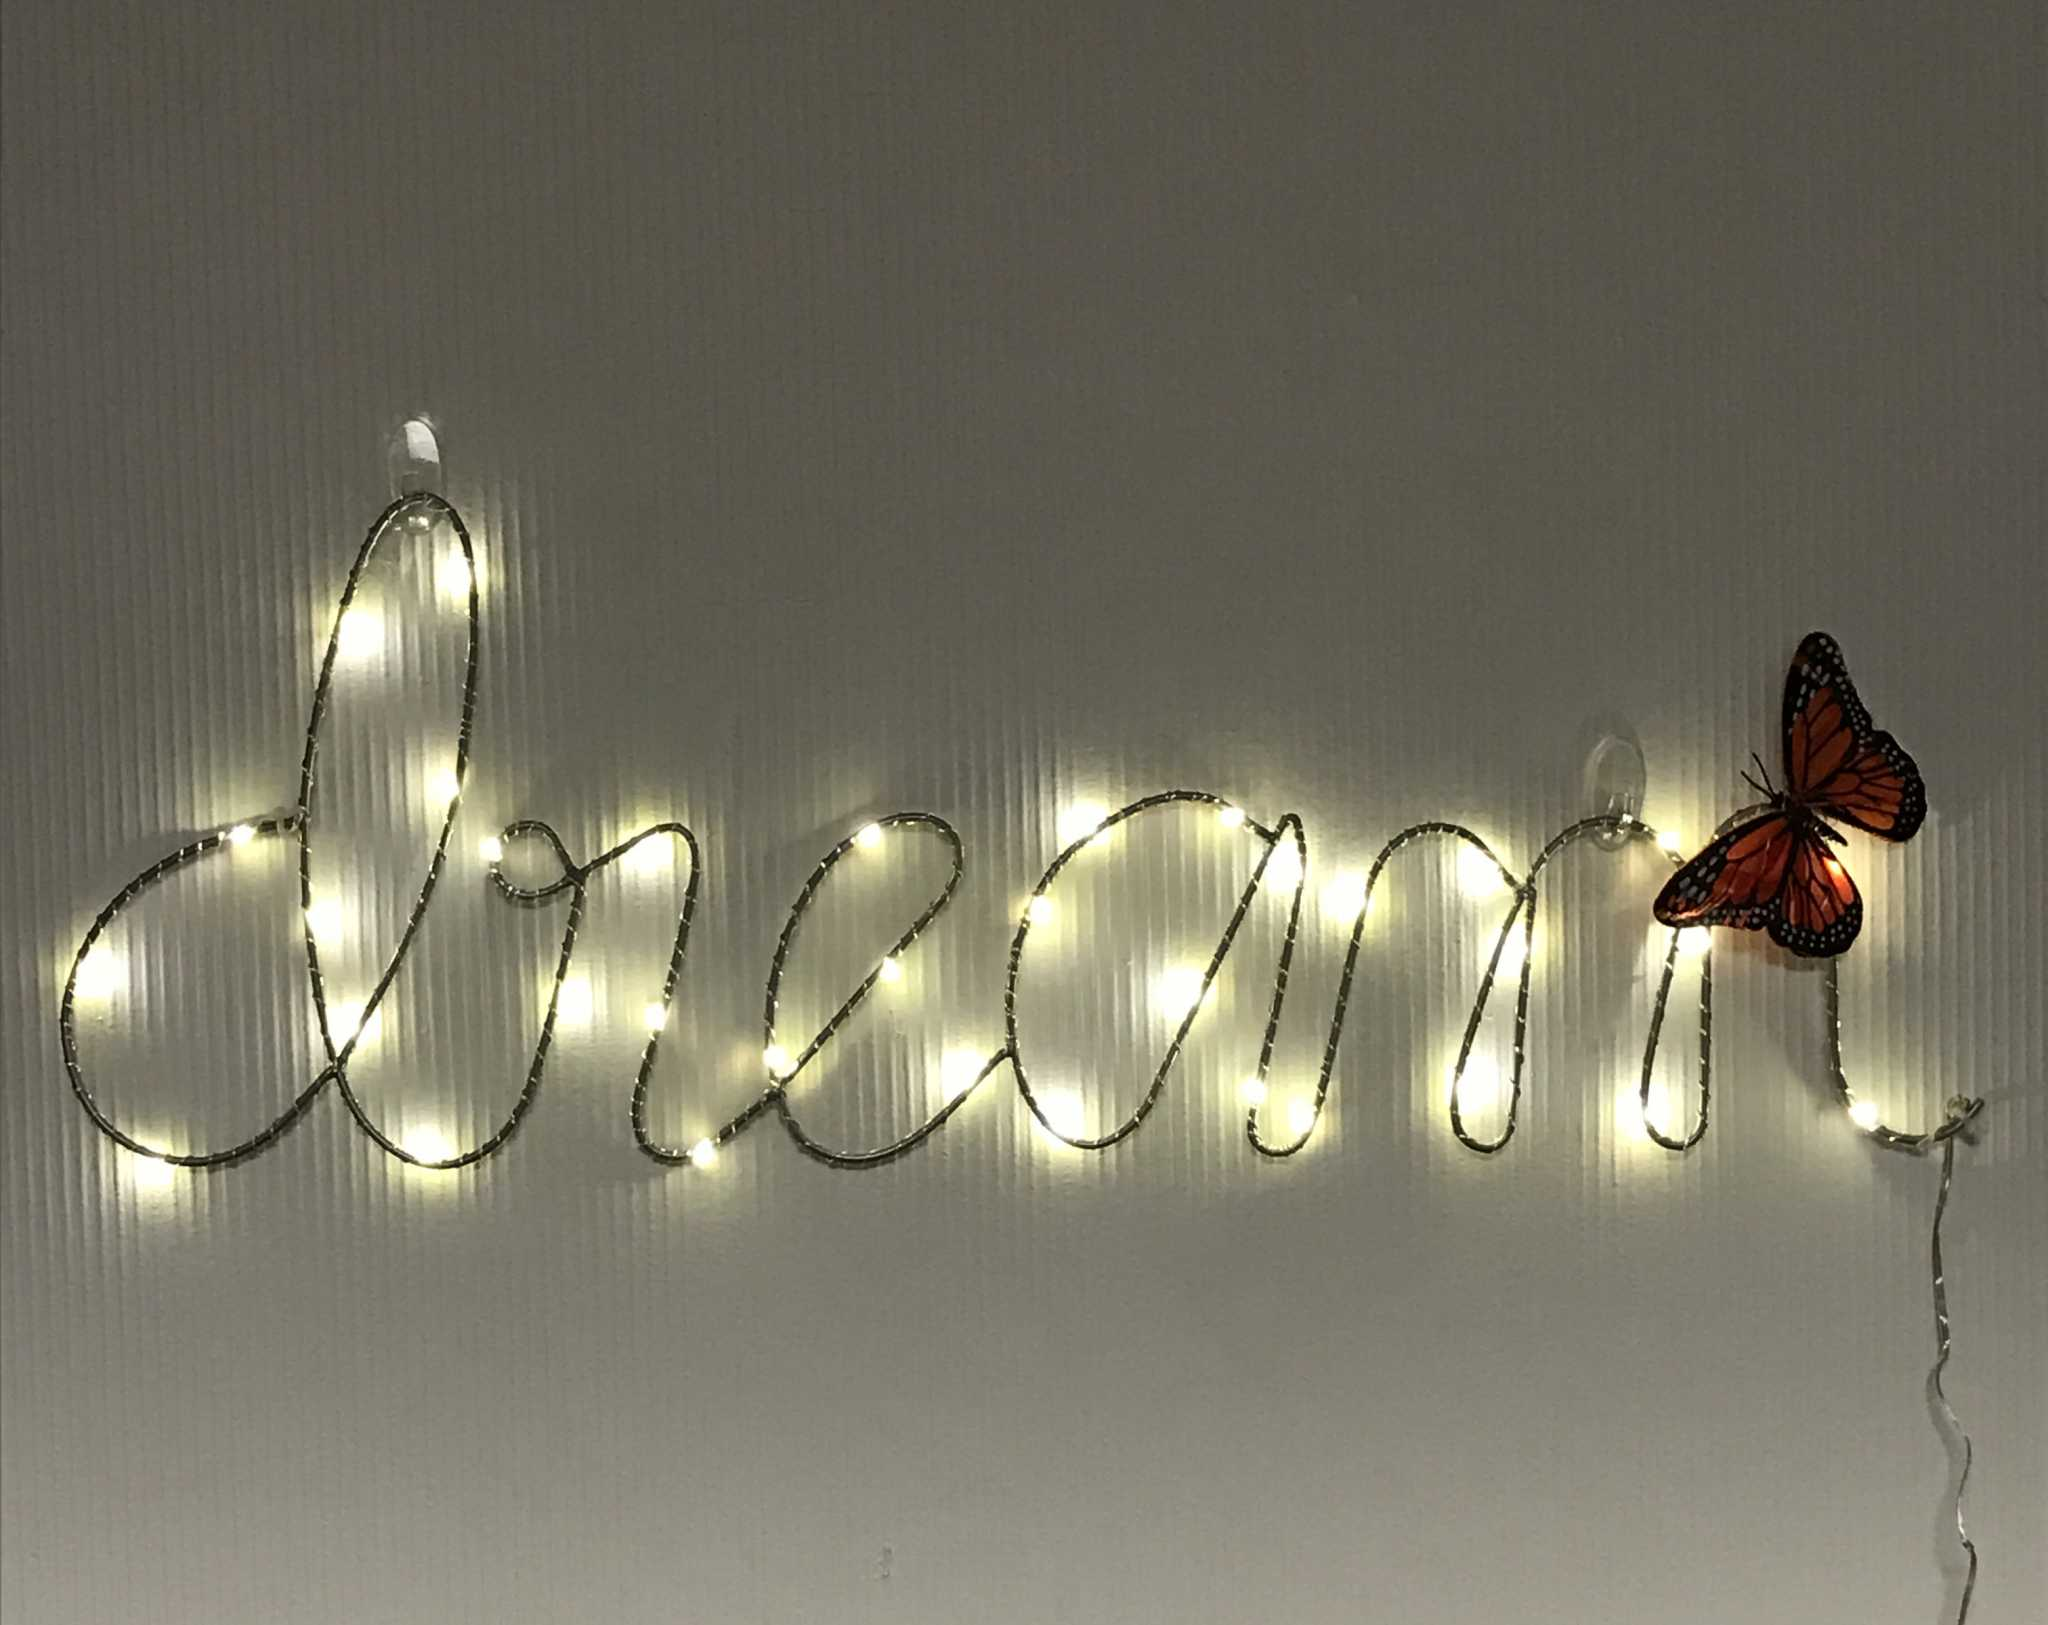 """Dream"" light sign with a monarch butterfly at the Dream Resource Center at SF State on Feb. 7, 2017. Butterflies were a prominent decoration throughout the night. The butterfly has become a symbol of immigrant rights. (Nicki McClelland/Xpress)"